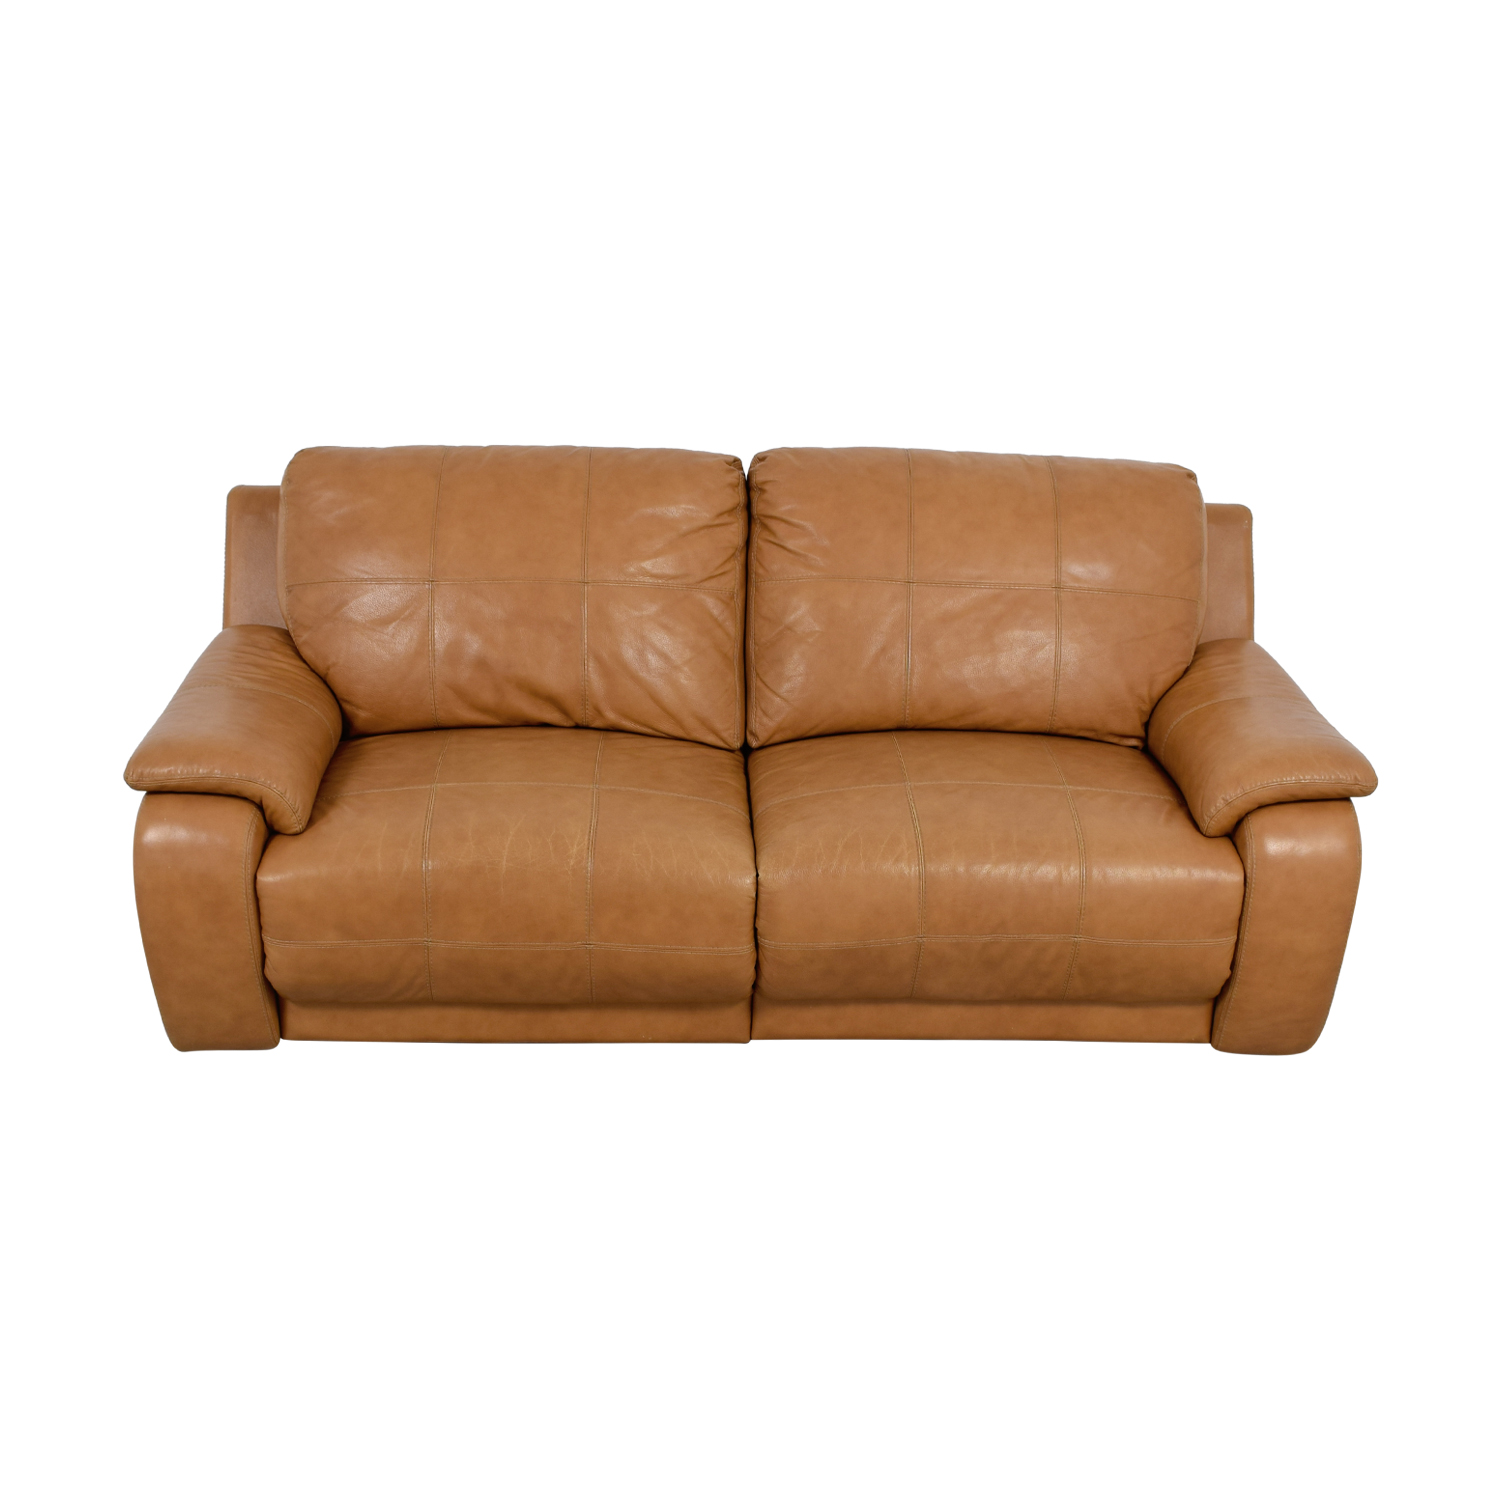 buy Raymour & Flanigan Power Recliner Brown Leather Sofa Raymour & Flanigan